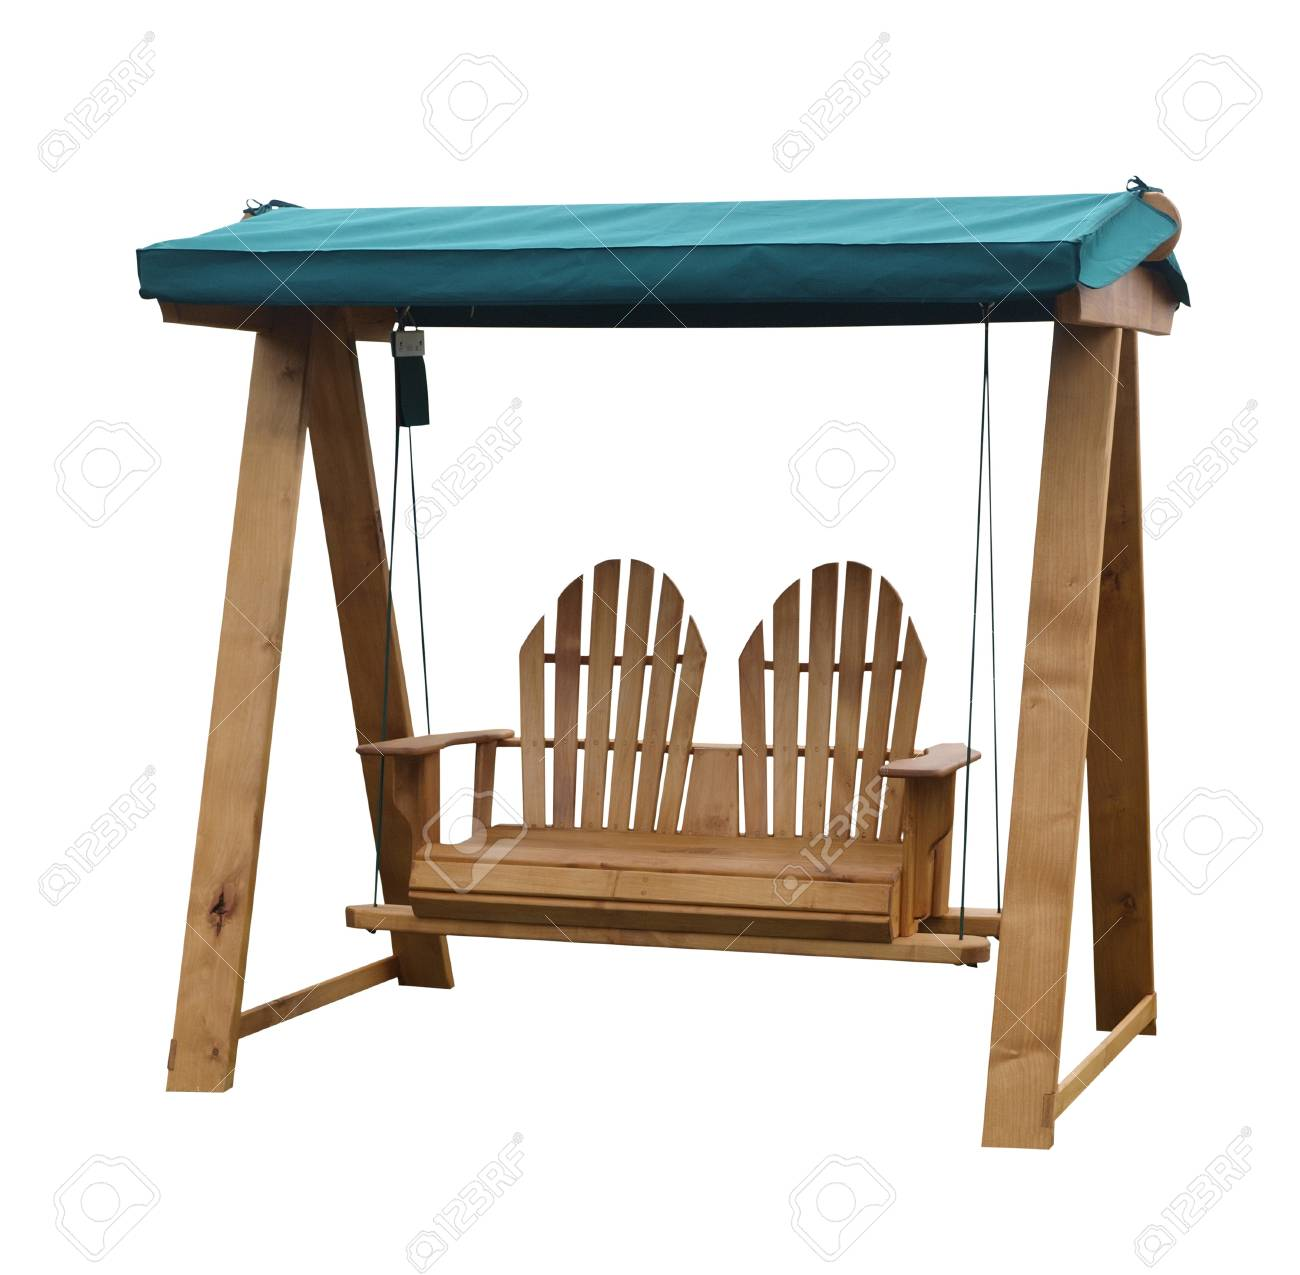 Wooden Garden Swing Seat Stock Photo Picture And Royalty Free Image